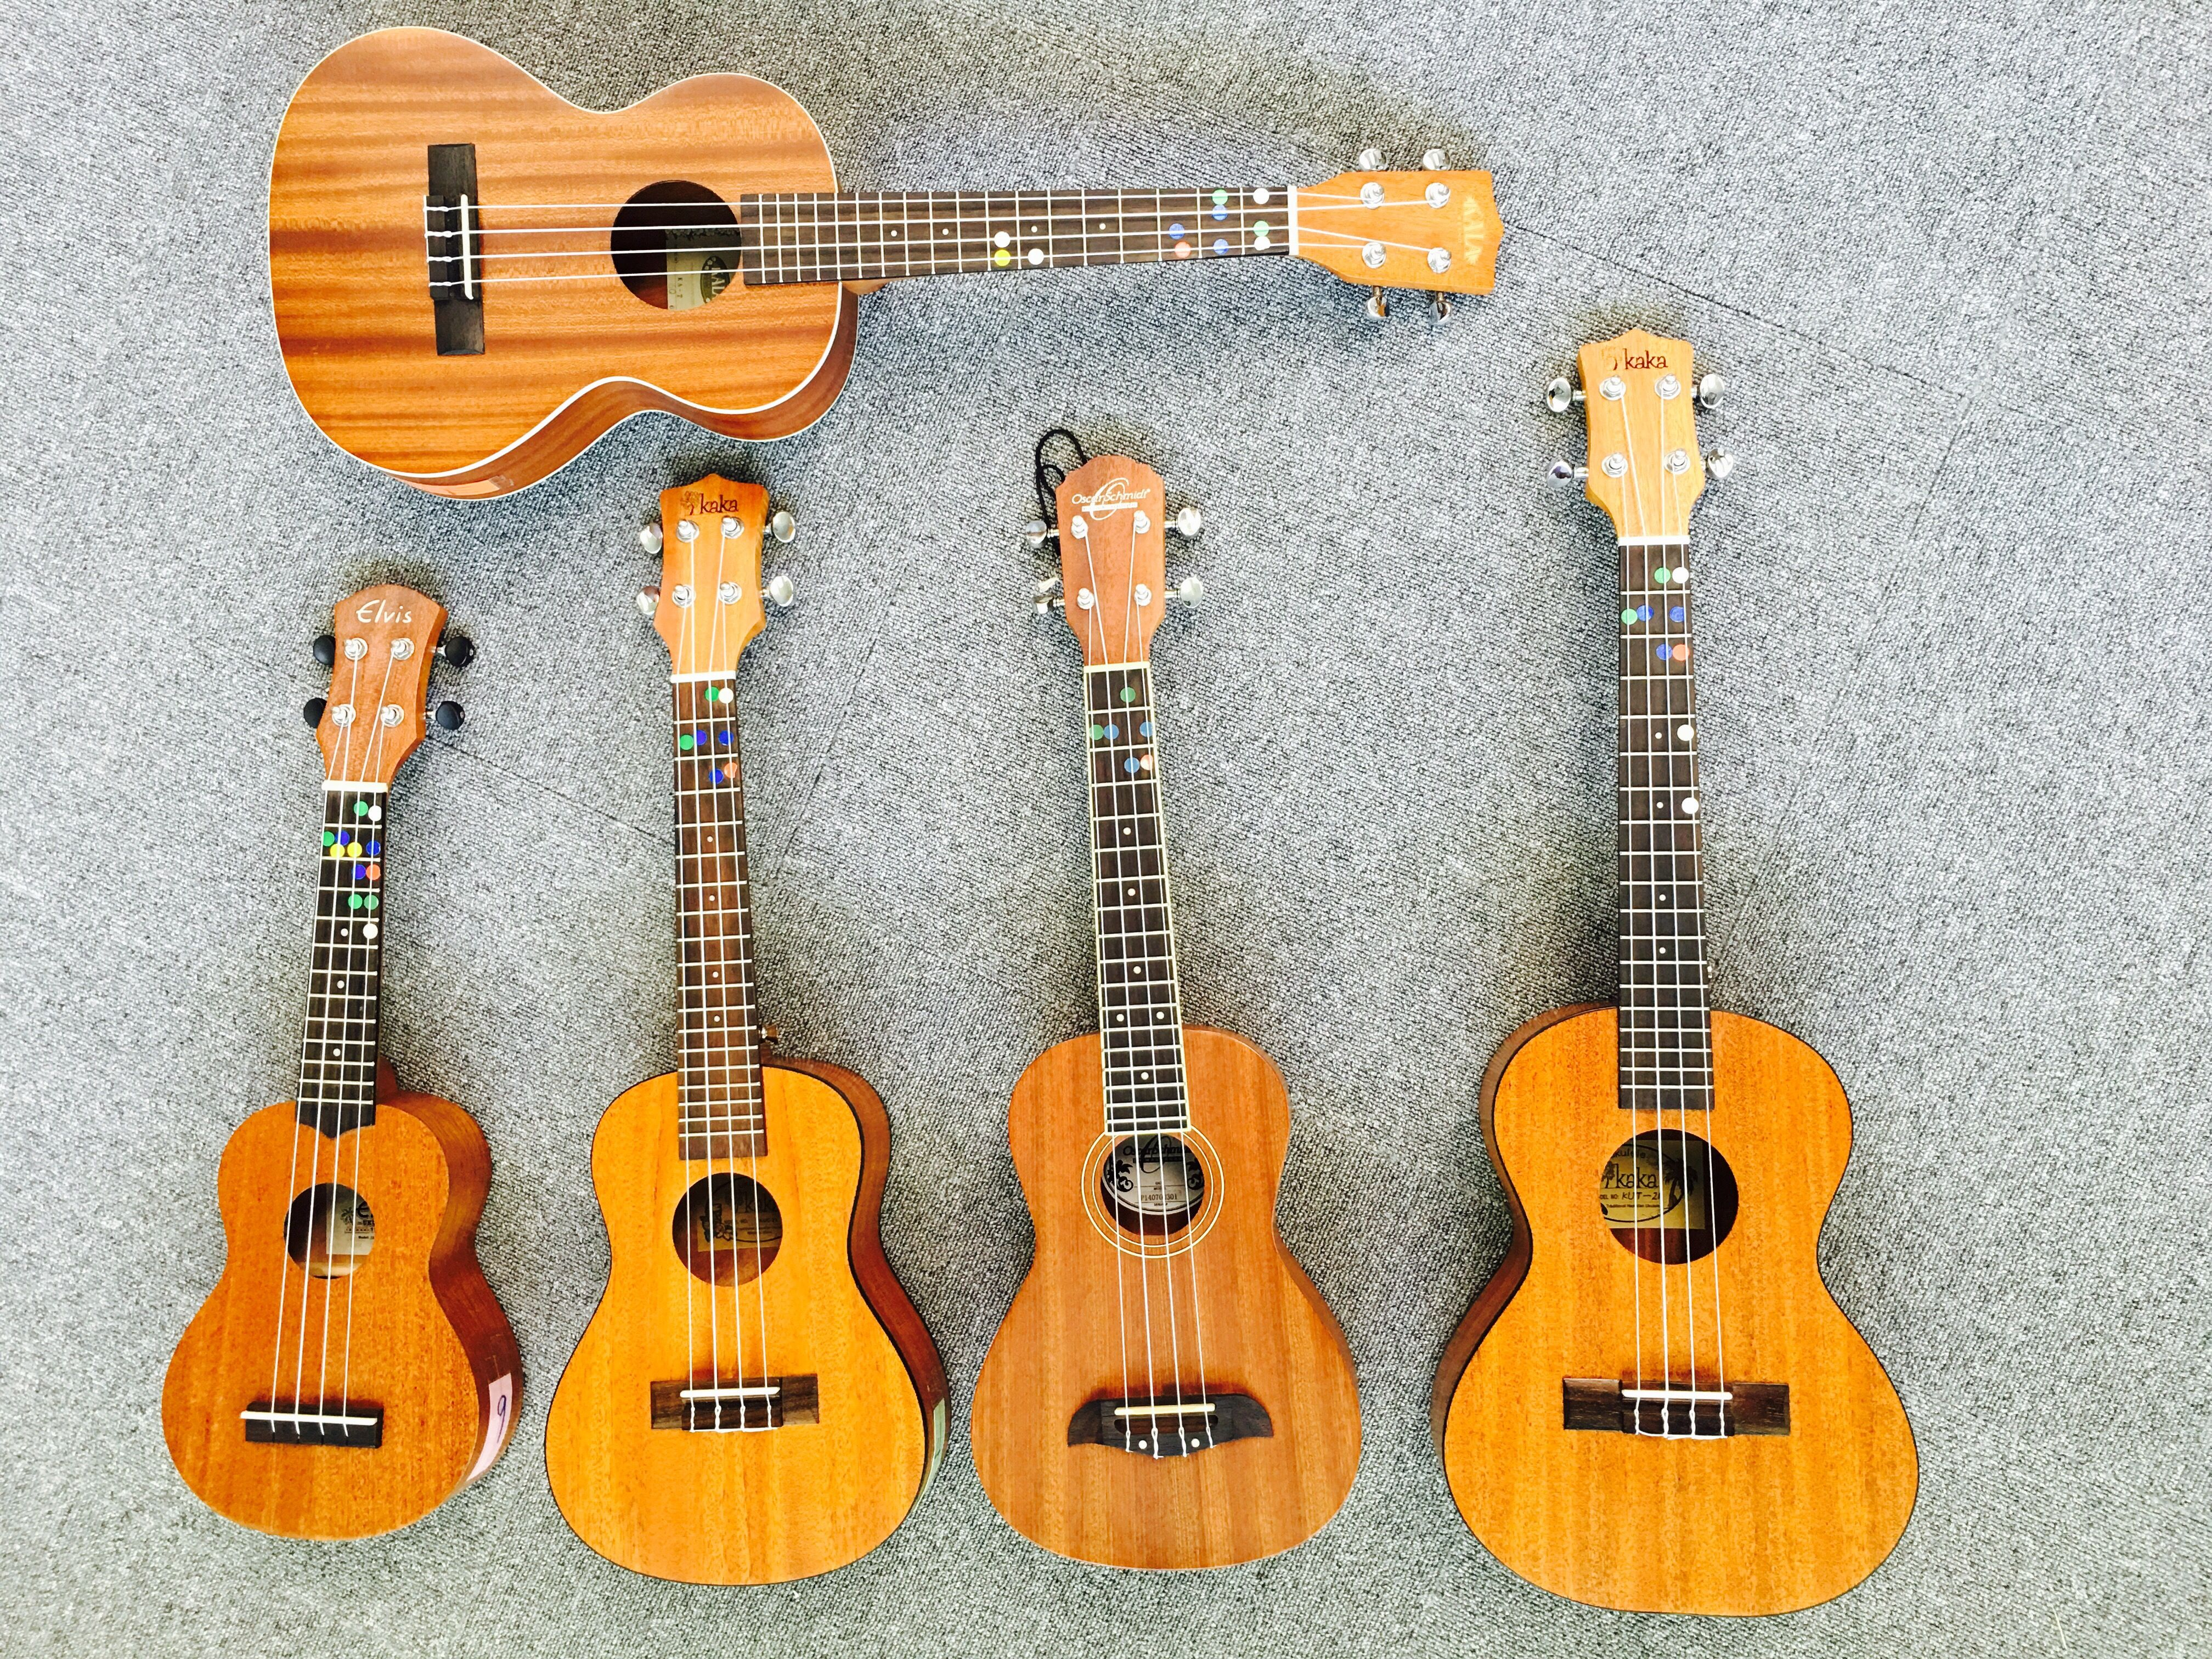 1 Ukulele Shopping If You Don T Know Much About Ukulele